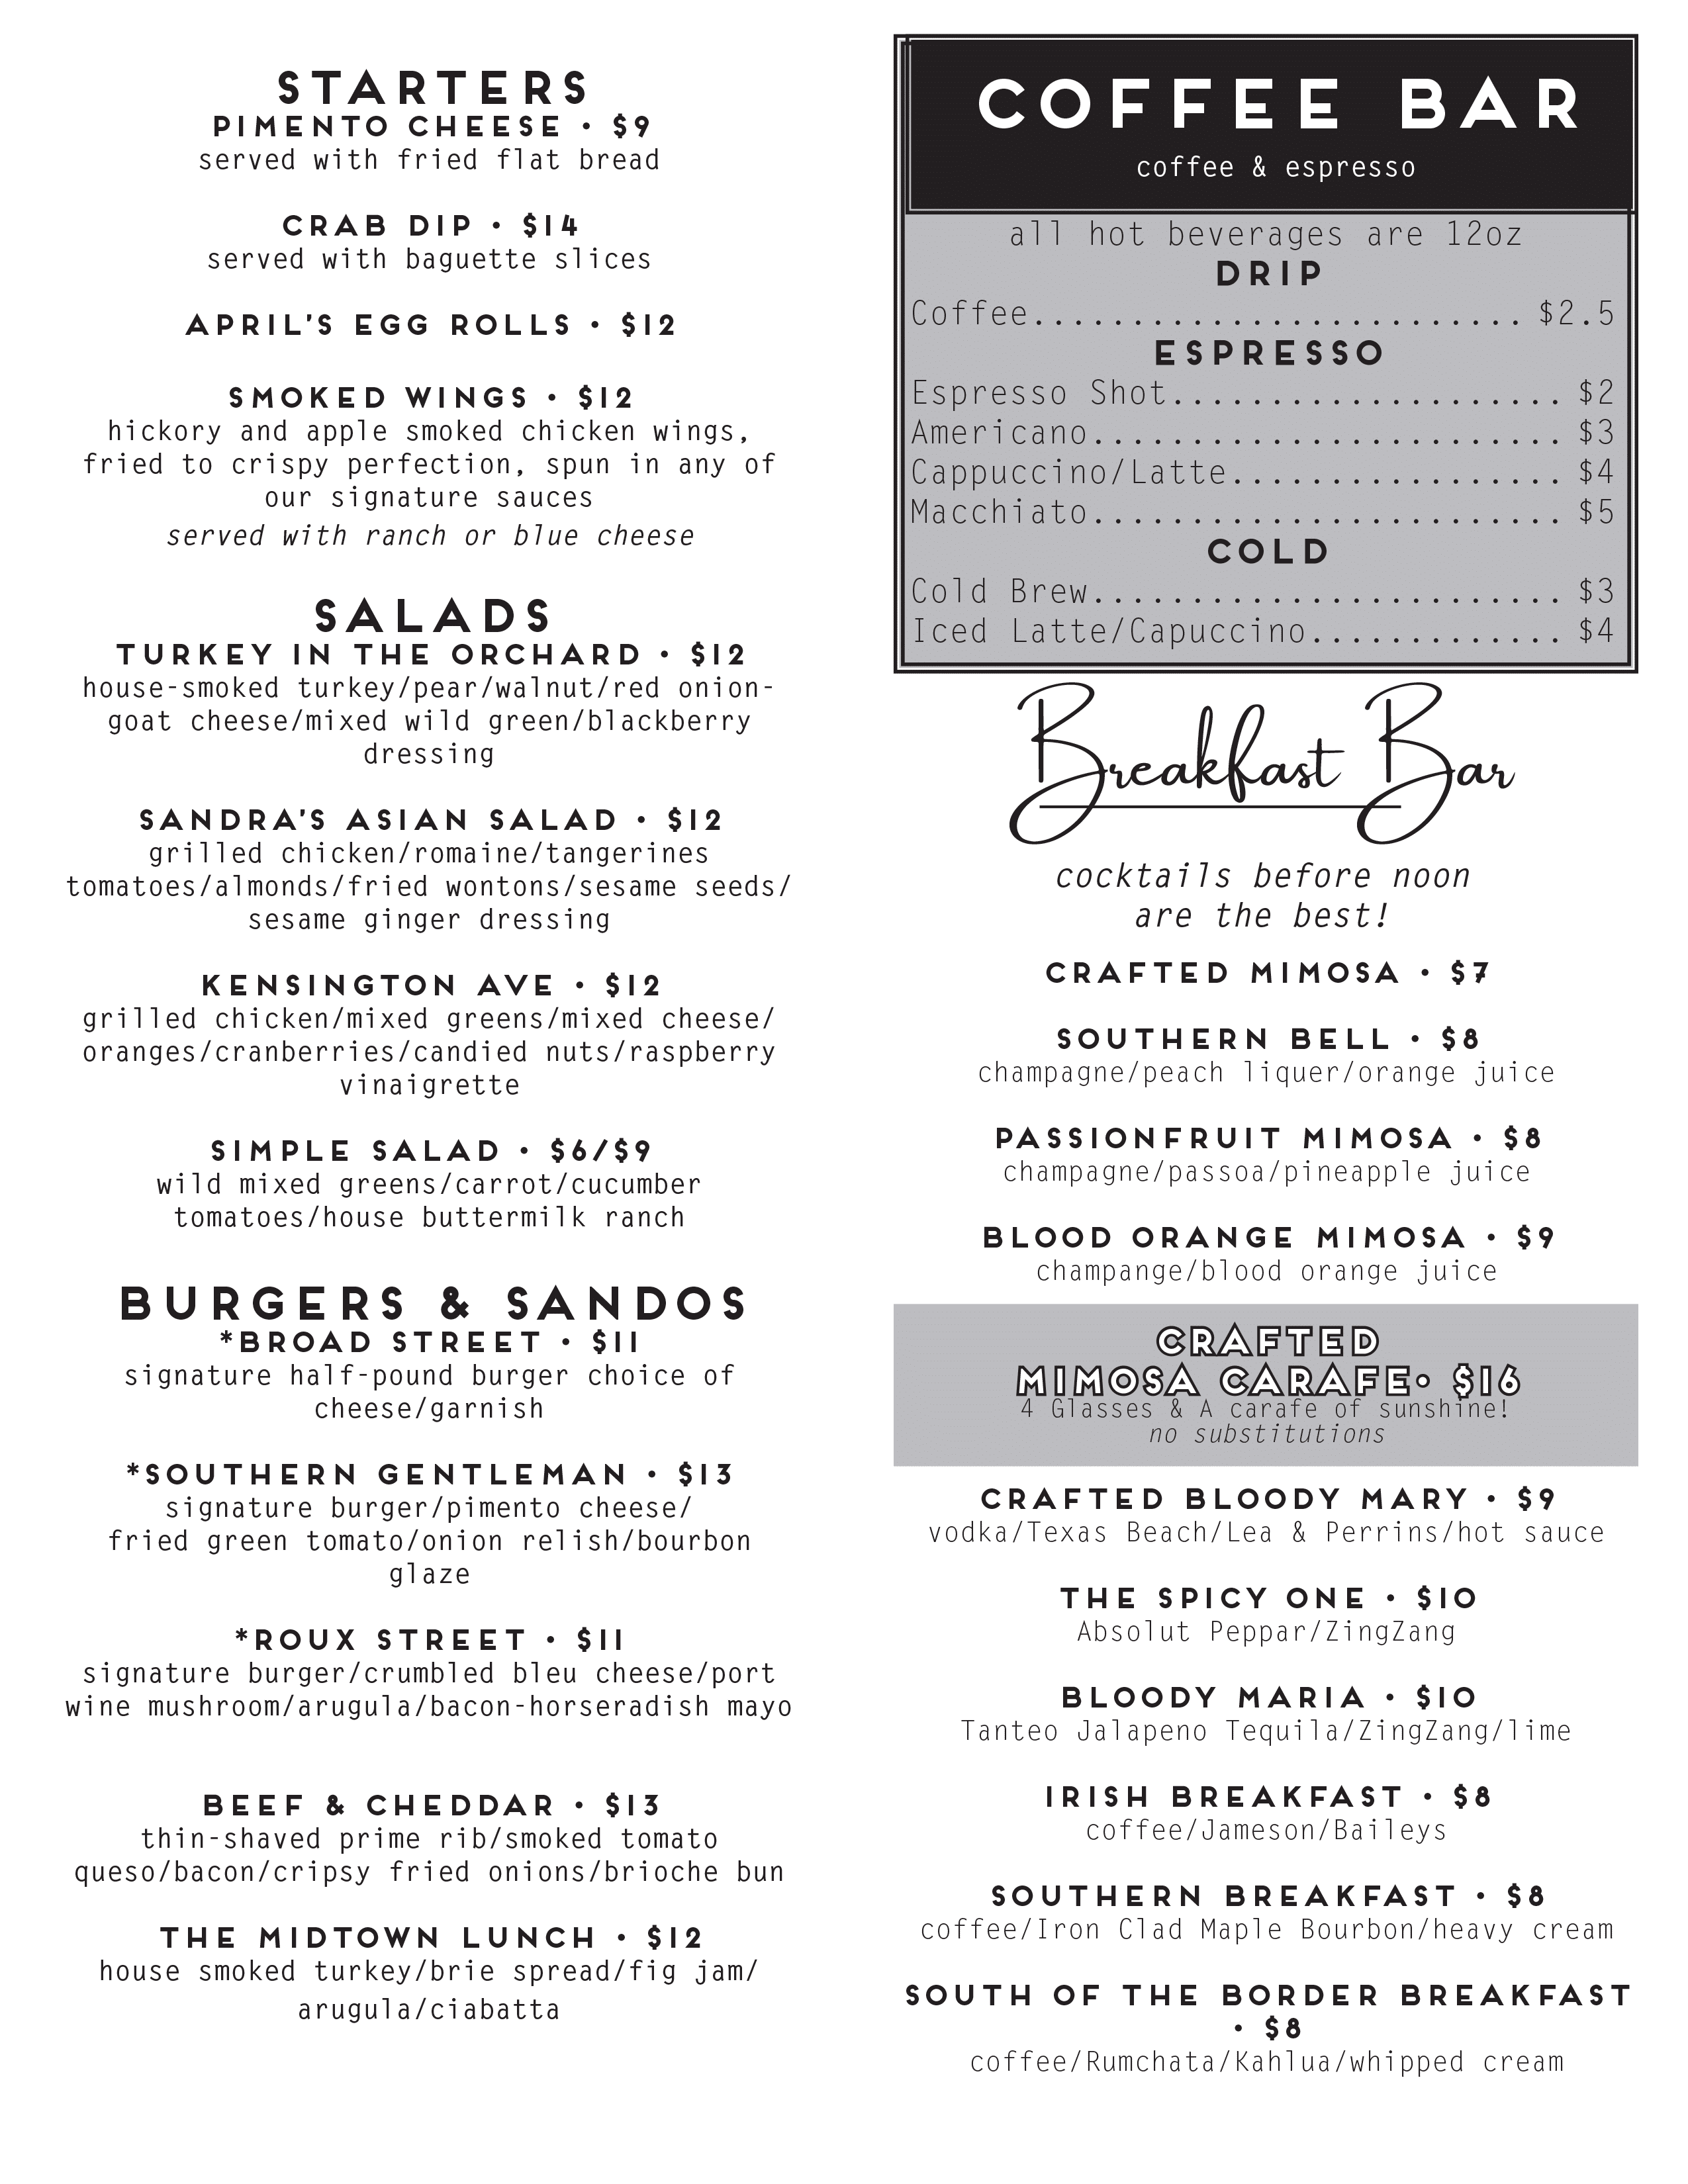 second page of brunch menu